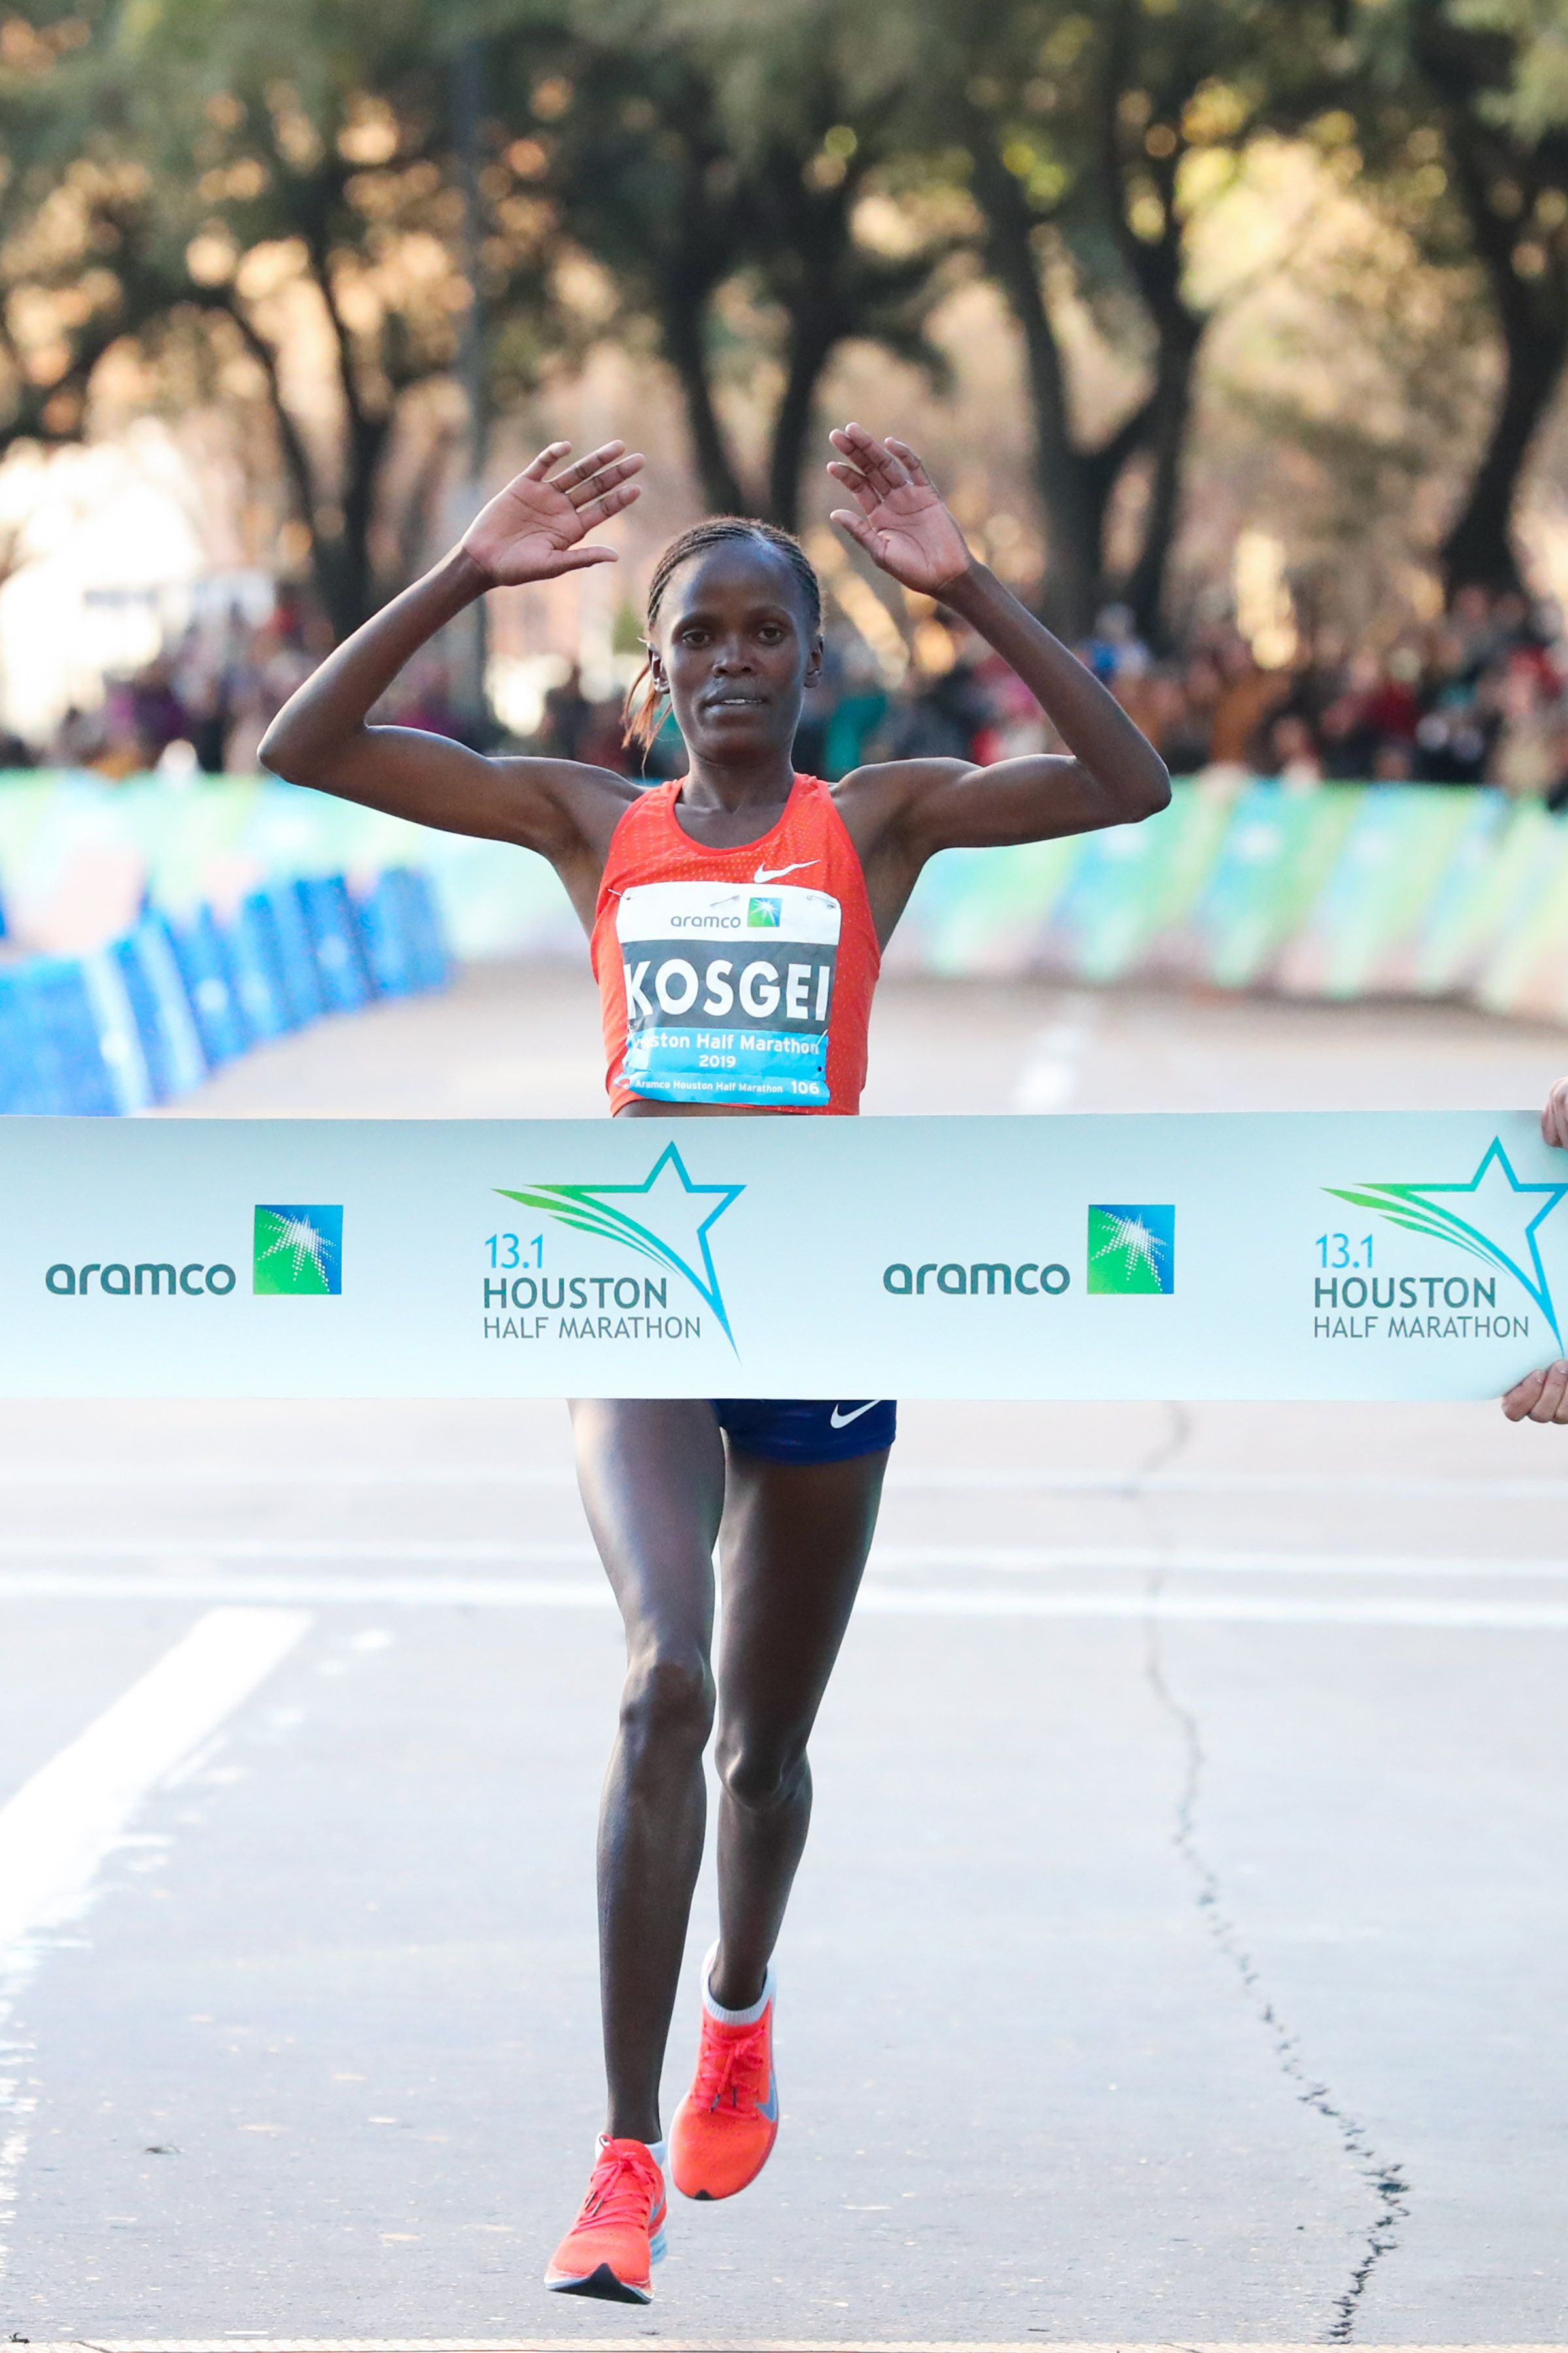 2af4b2eefa Kiplagat is a two-time IAAF World Marathon Champion and winner of the 2017  Boston Marathon who will be chasing her second victory at the Peachtree, ...